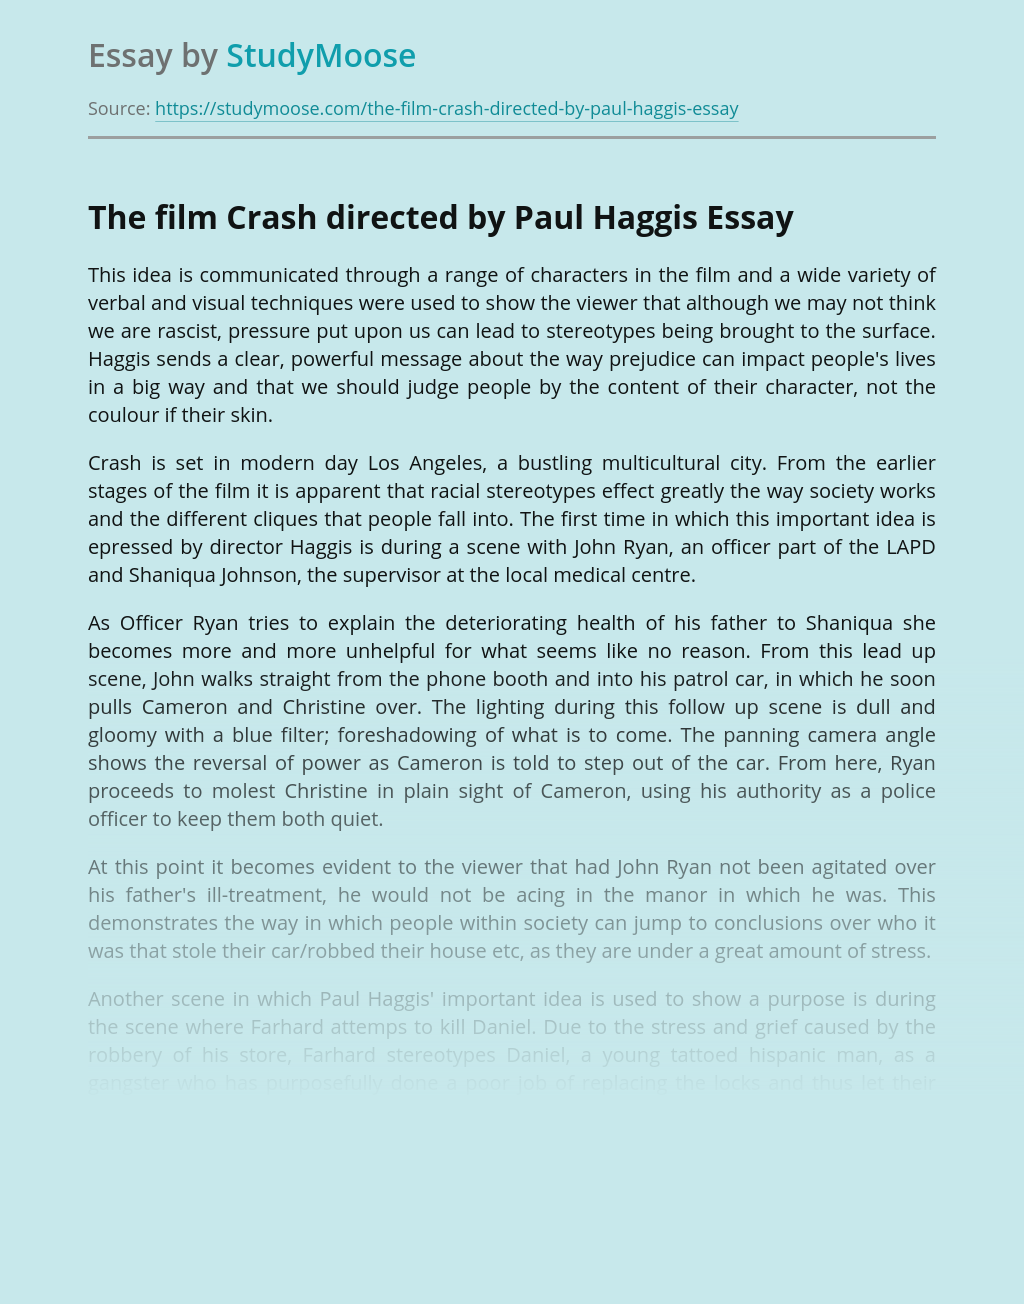 The film Crash directed by Paul Haggis